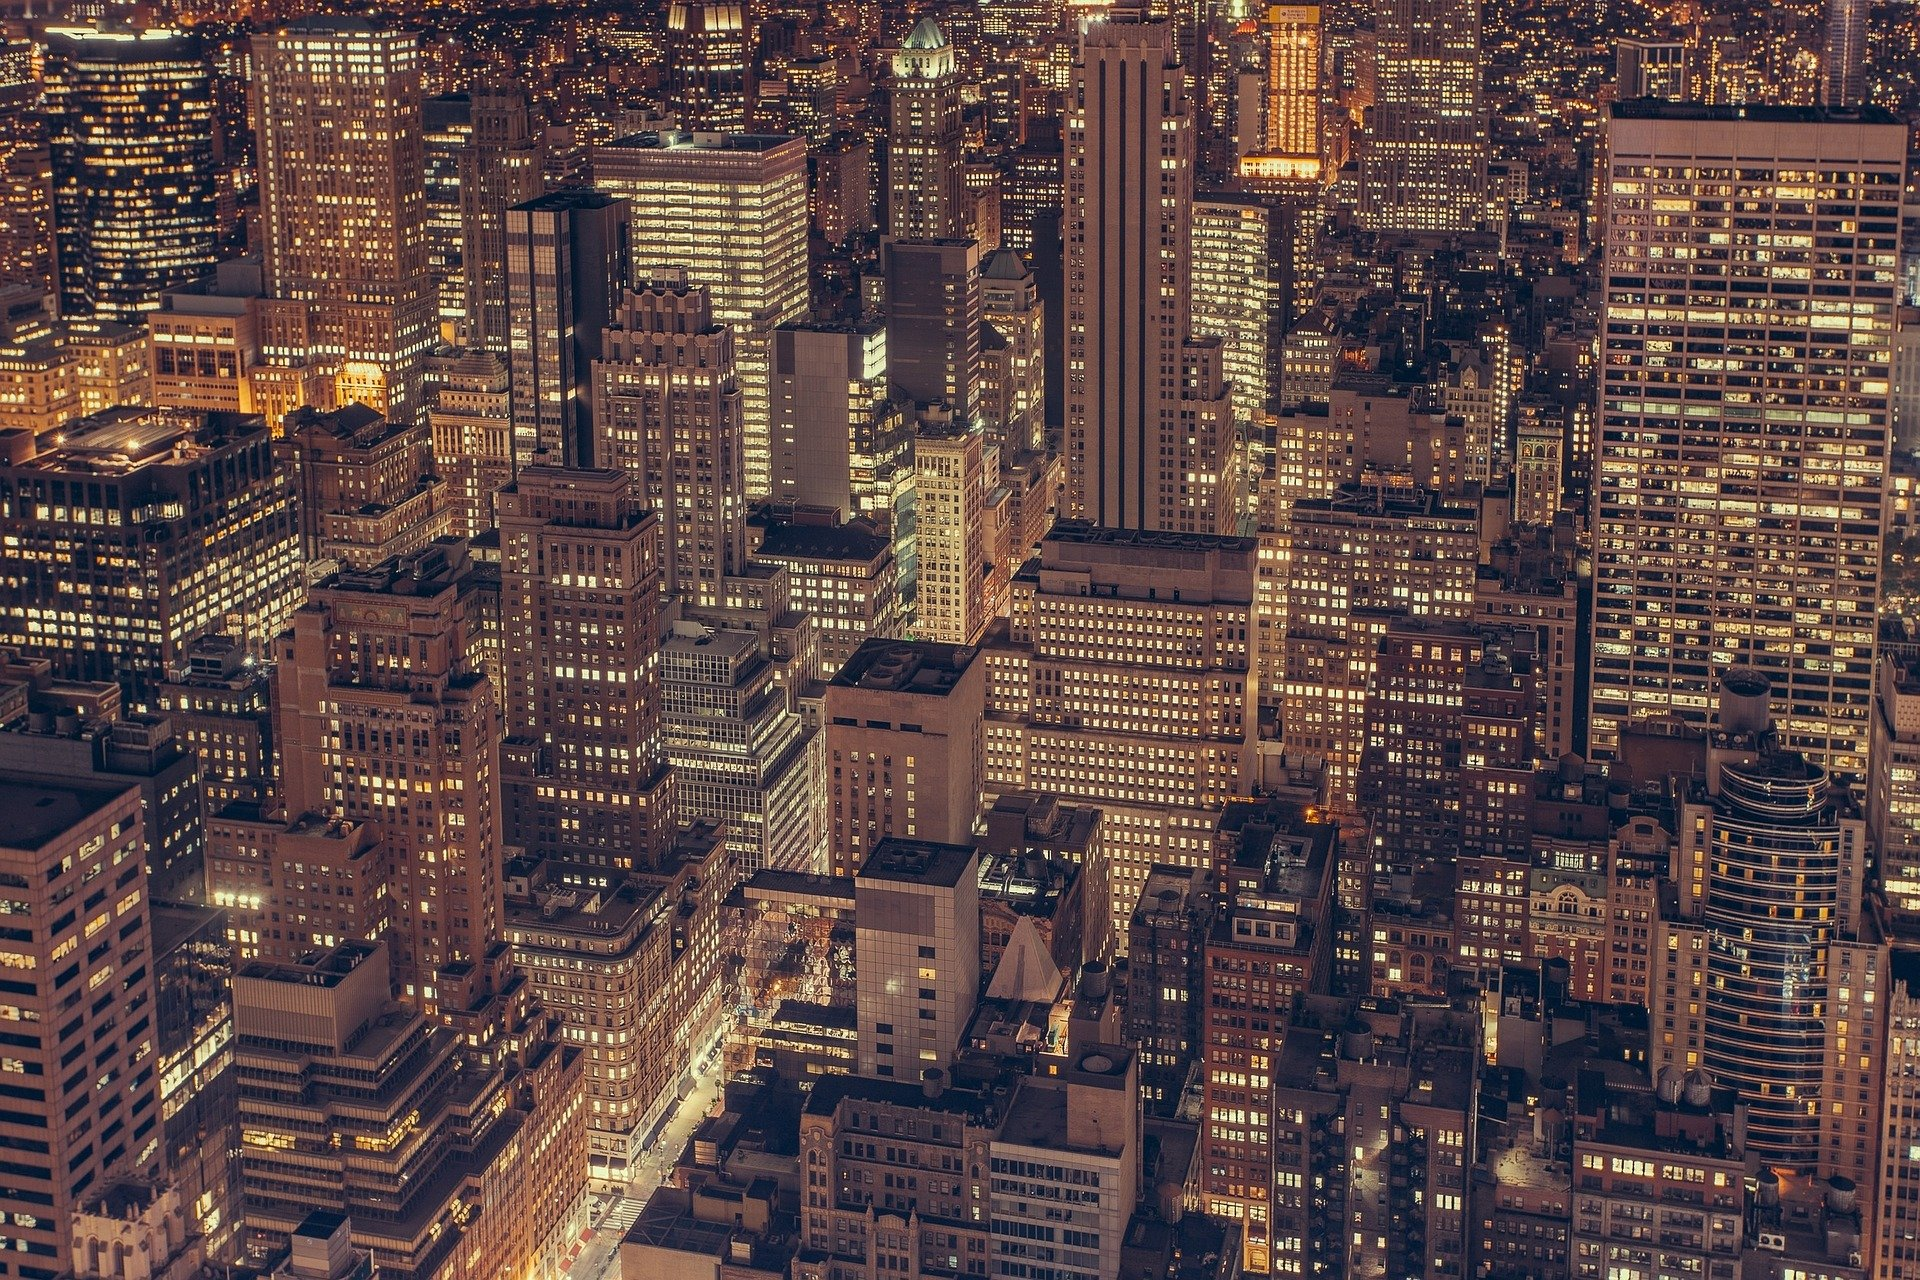 Urban planning policy contributes to political polarization